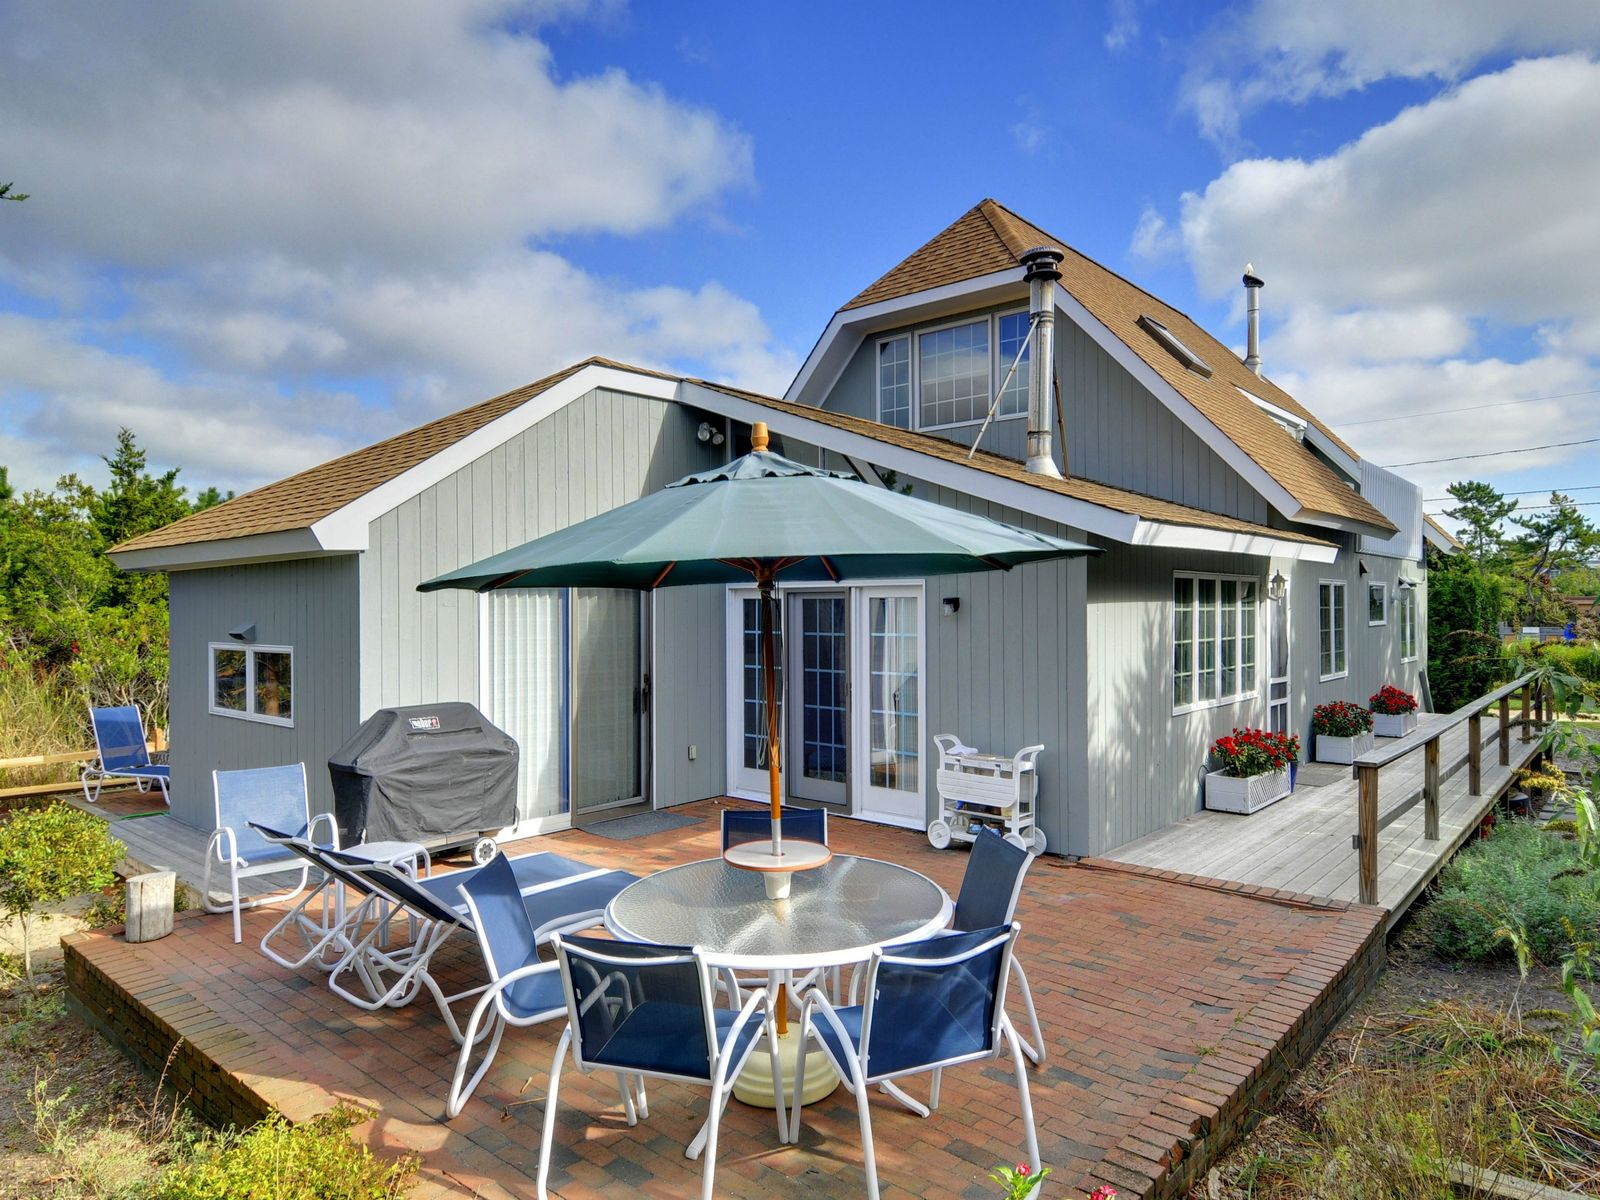 Amagansett Beach House, Amagansett NY Single Family Home - Hamptons Real Estate